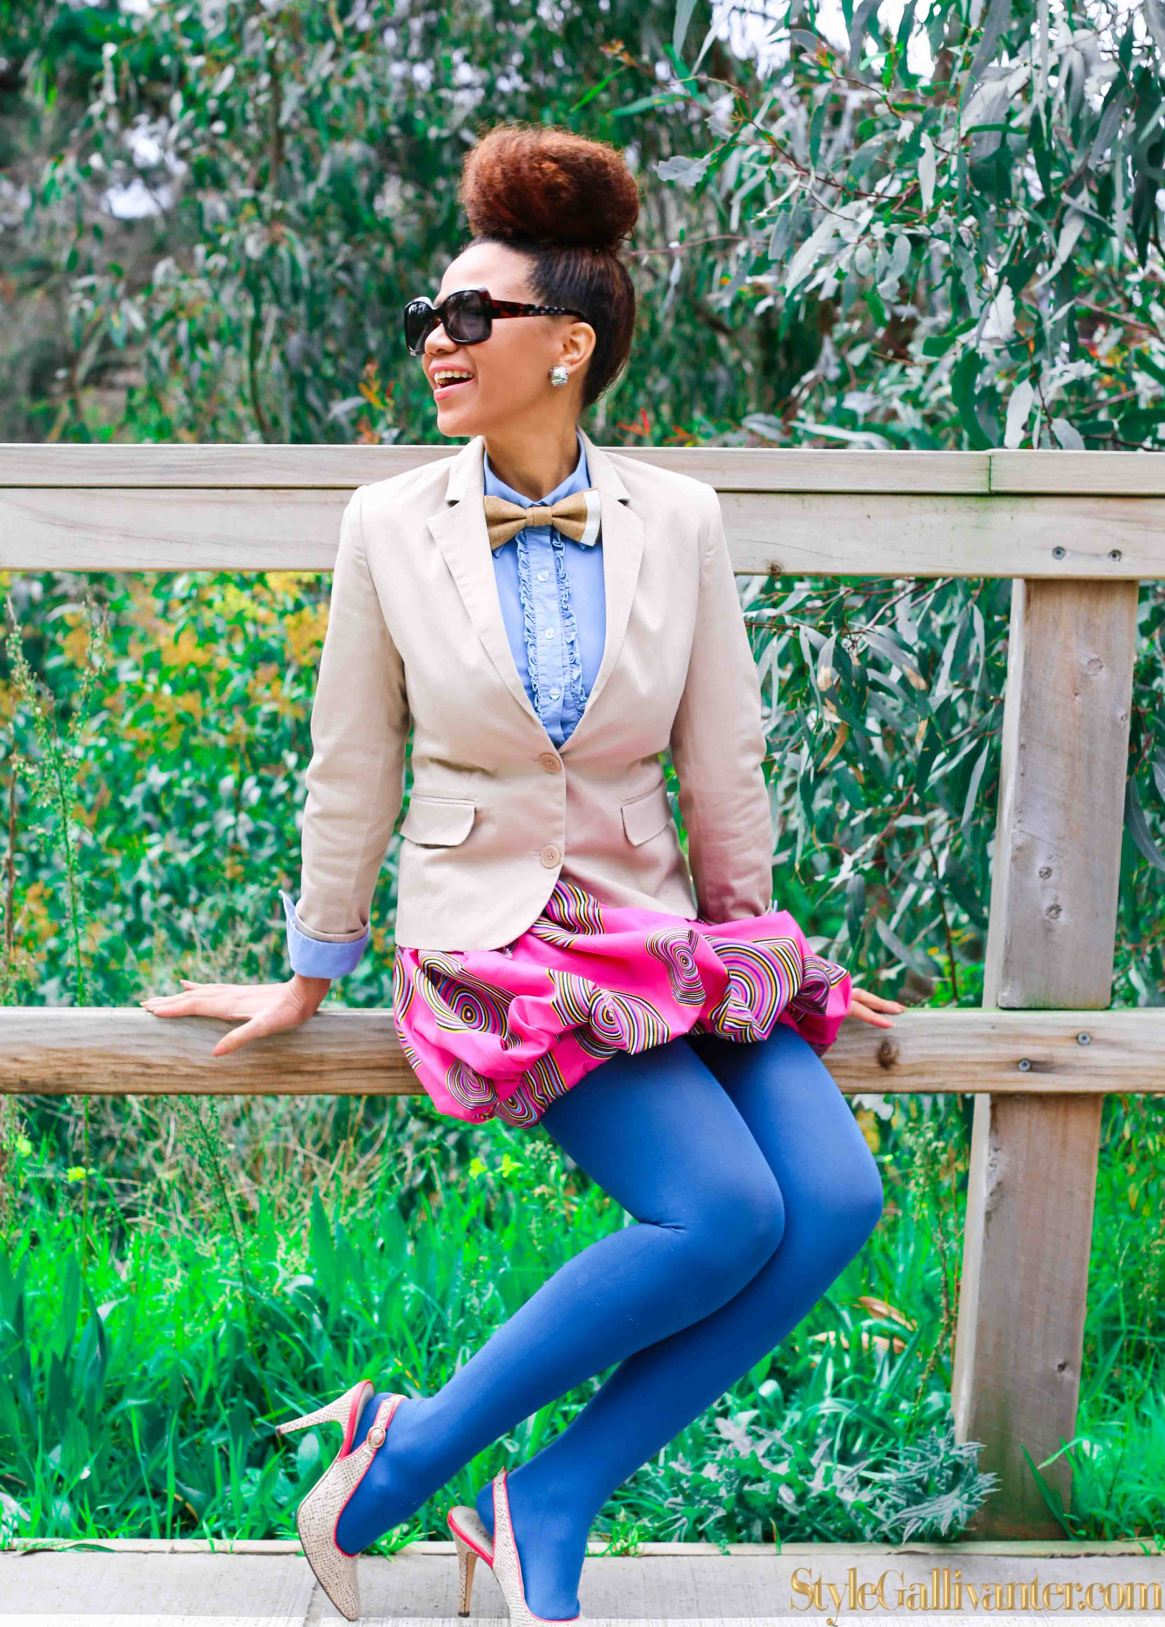 best-bowties-australia_high-fashion-bowtie_top-fashion-blogs-africa_best-african-american-fashion-bloggers_coloured-stockings_colored-tights_pink-bubble-skirt_barbie-editorial_princess-editorial_cute-japanese-fashion-editorial-9